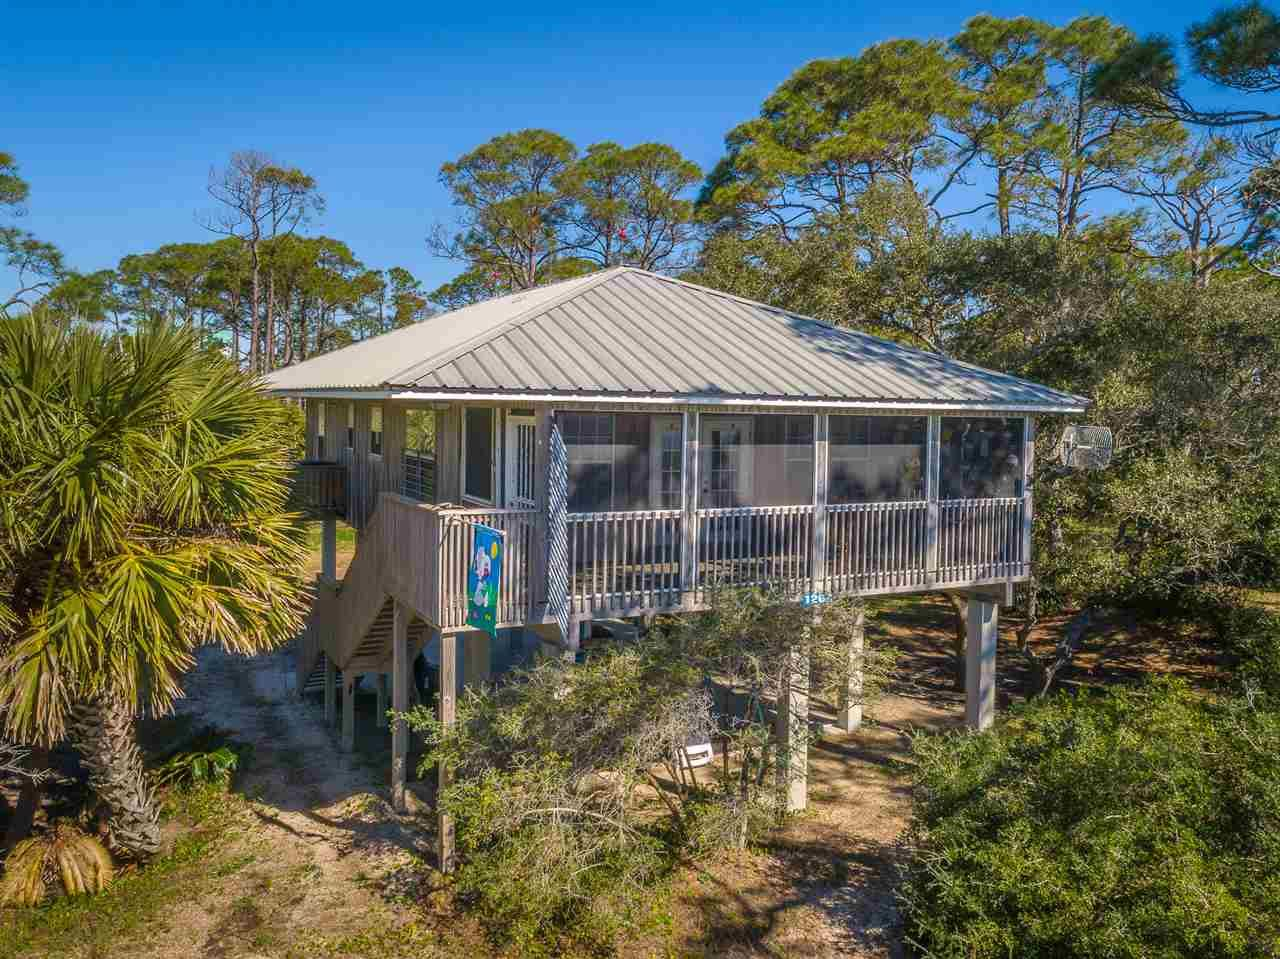 1268 Alligator Drive, Alligator Point, FL 32346 - MLS#: 329047